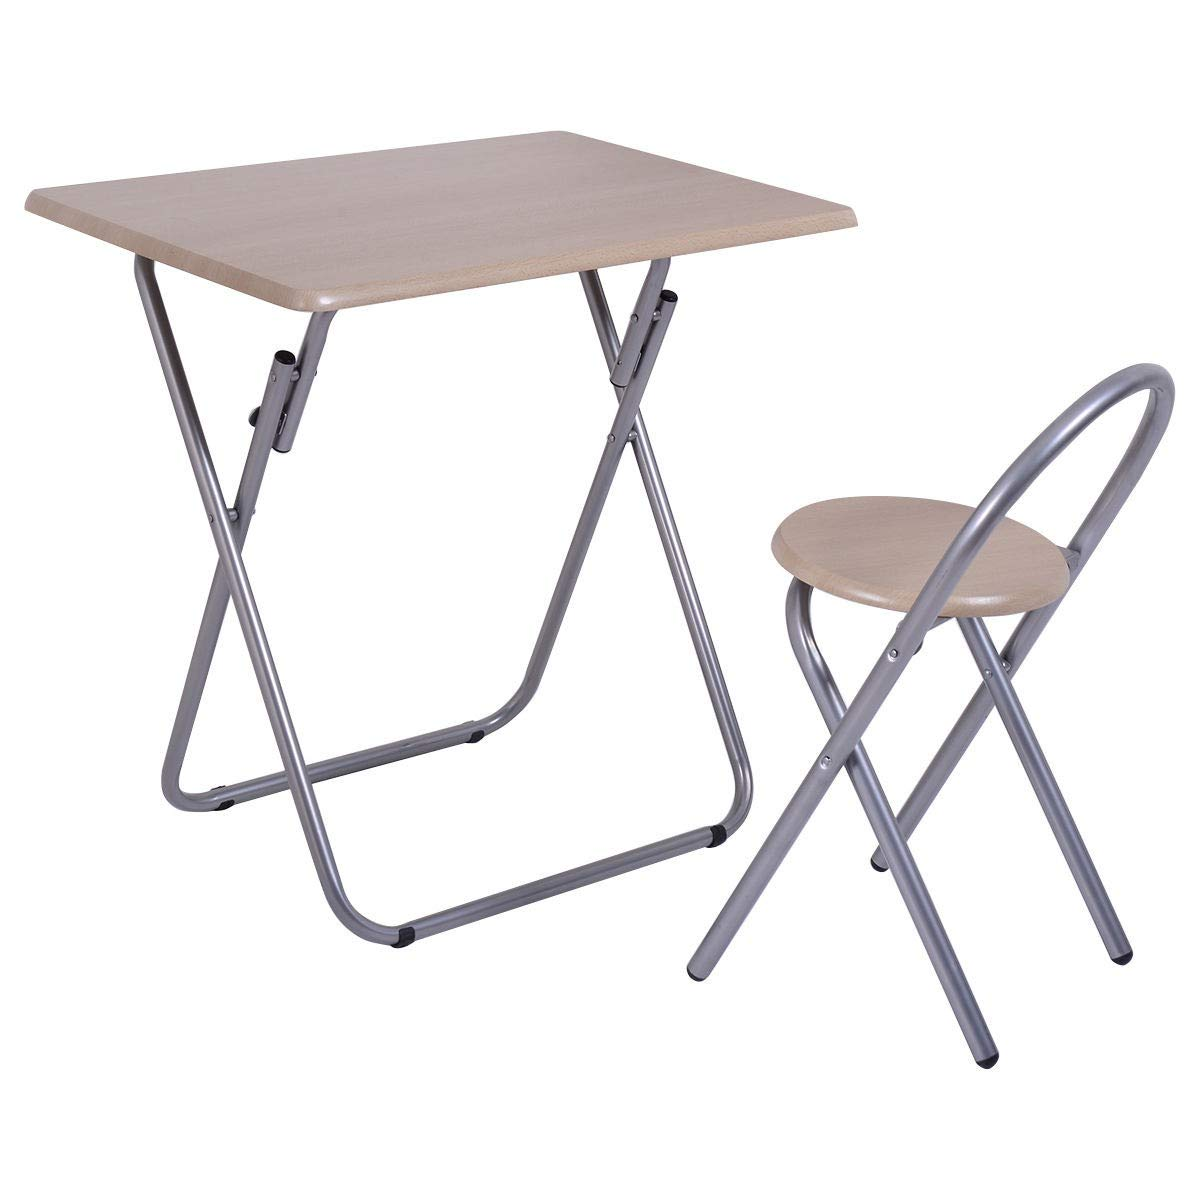 MD Group Table Chair Set Kids Folding Study Writing Desk School Children Home Student Furniture